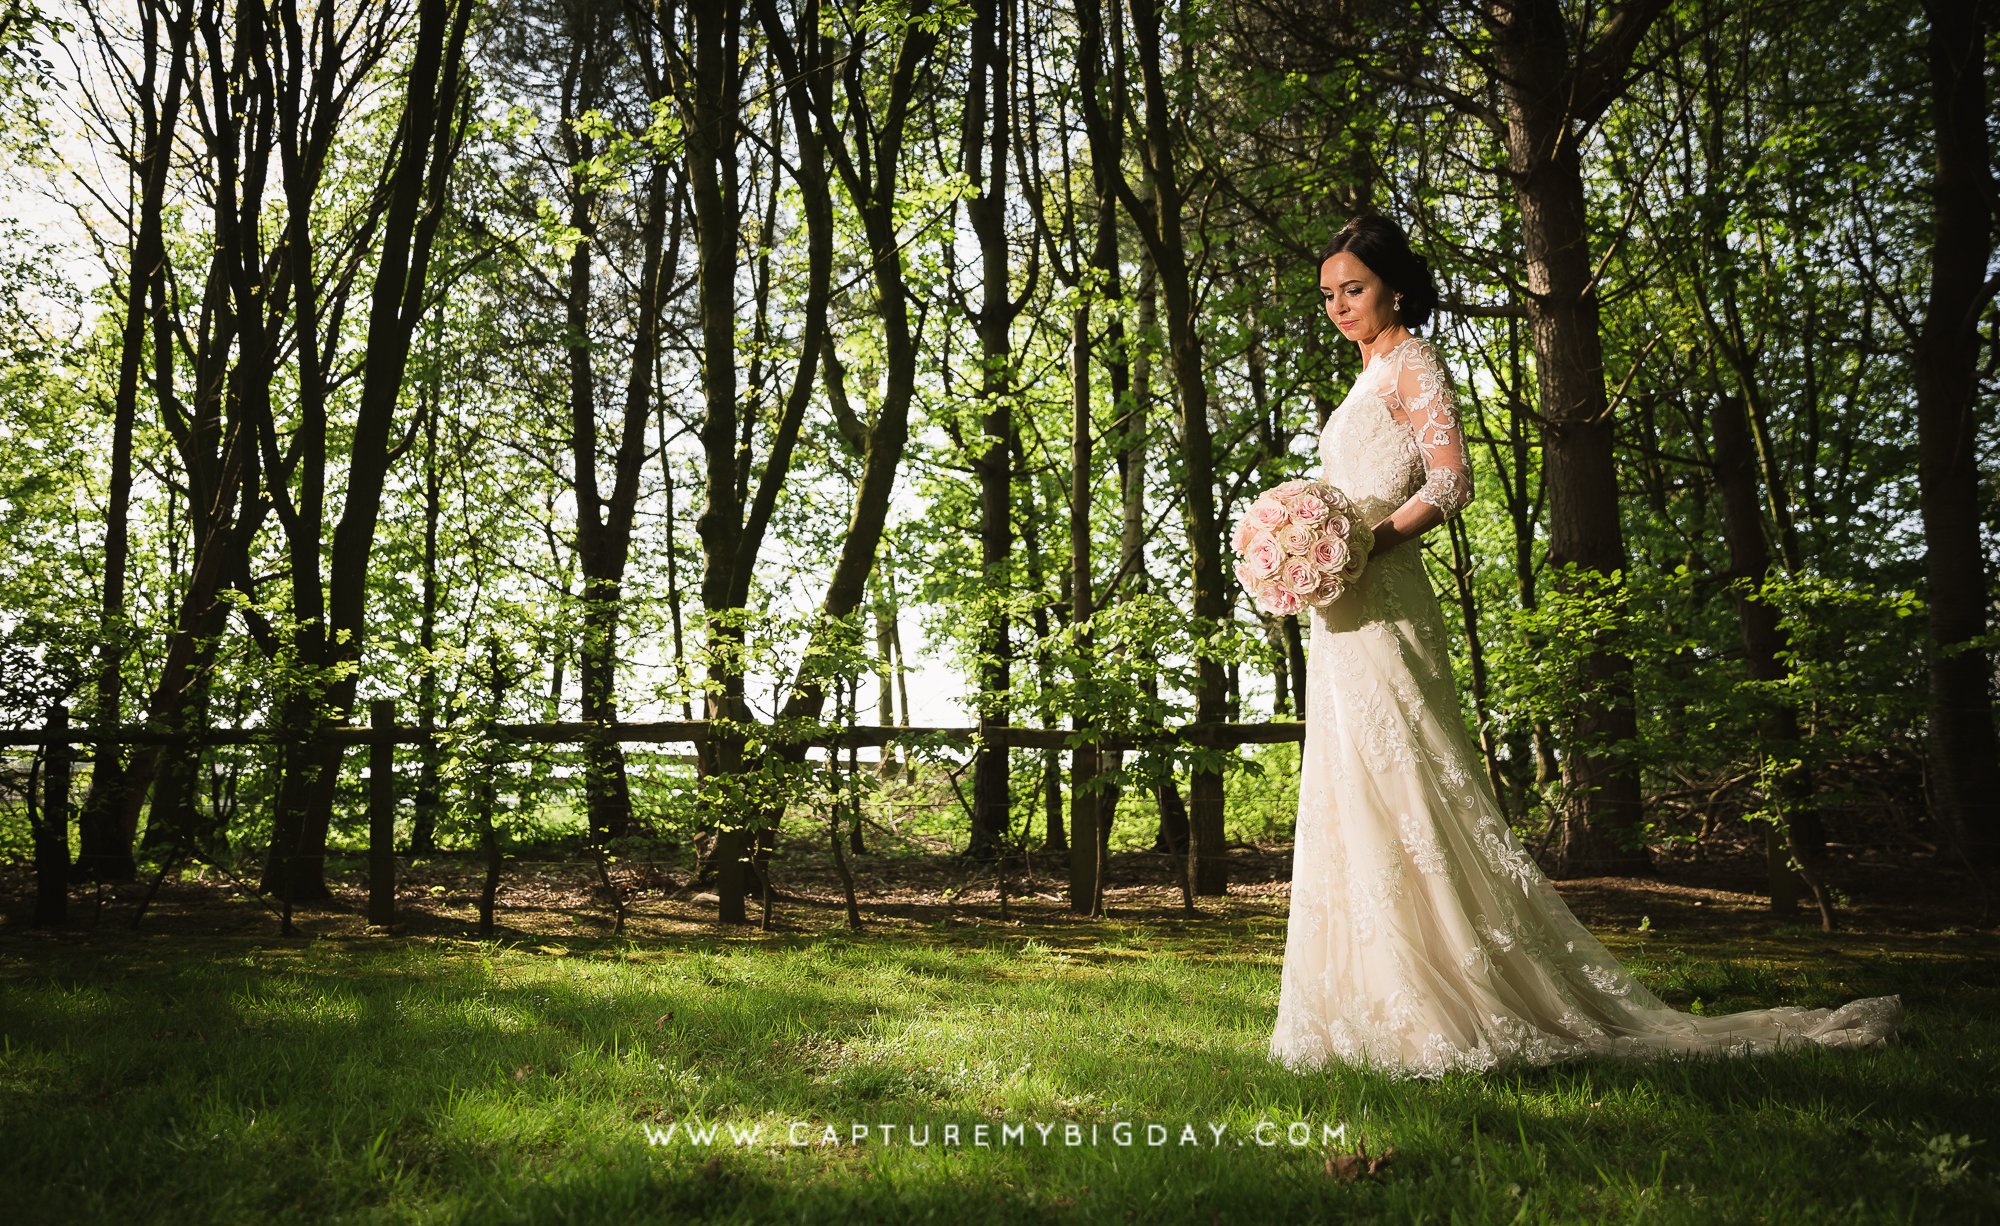 Bride standing in the woodlands